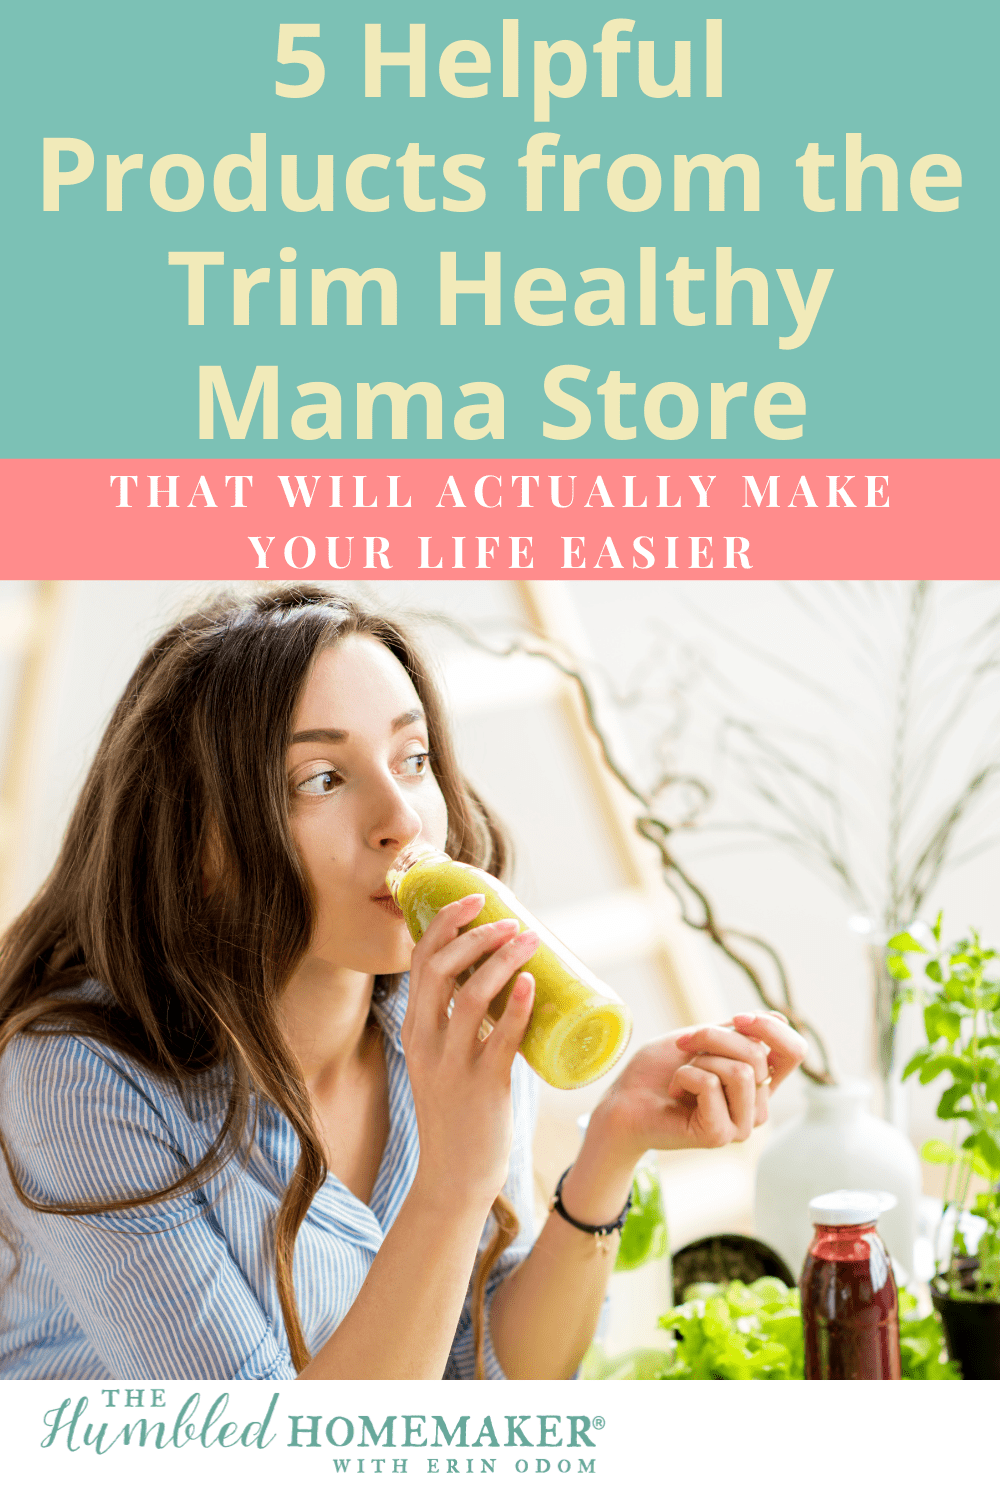 Find out which Trim Healthy Mama products to buy from their store when you cannot buy them all. These are the products that are the most helpful and will actually make your life easier!